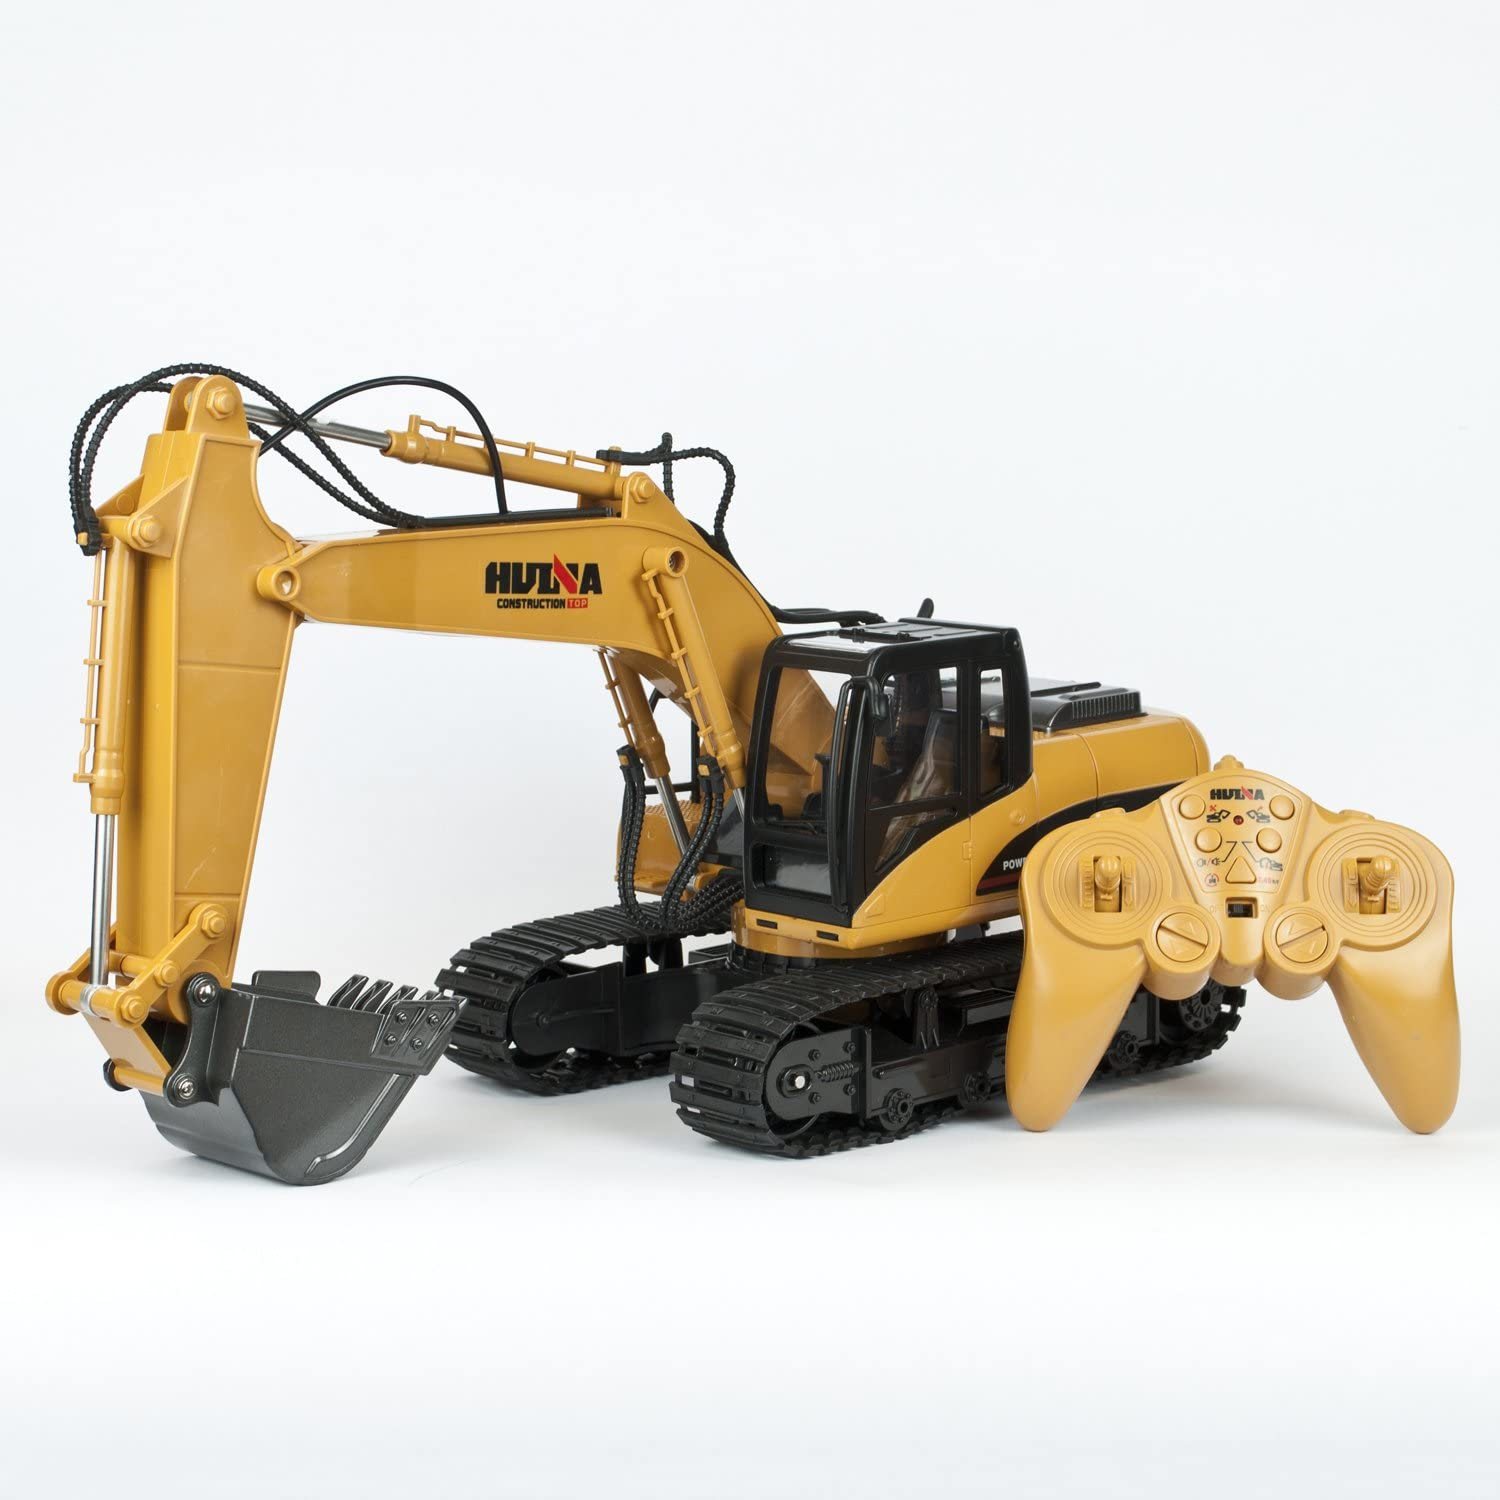 TekBox 15 Channel RC Remote Control Excavator Digger 2.4Ghz Fully Functional Battery Powered Construction Toy 1 14 Scale